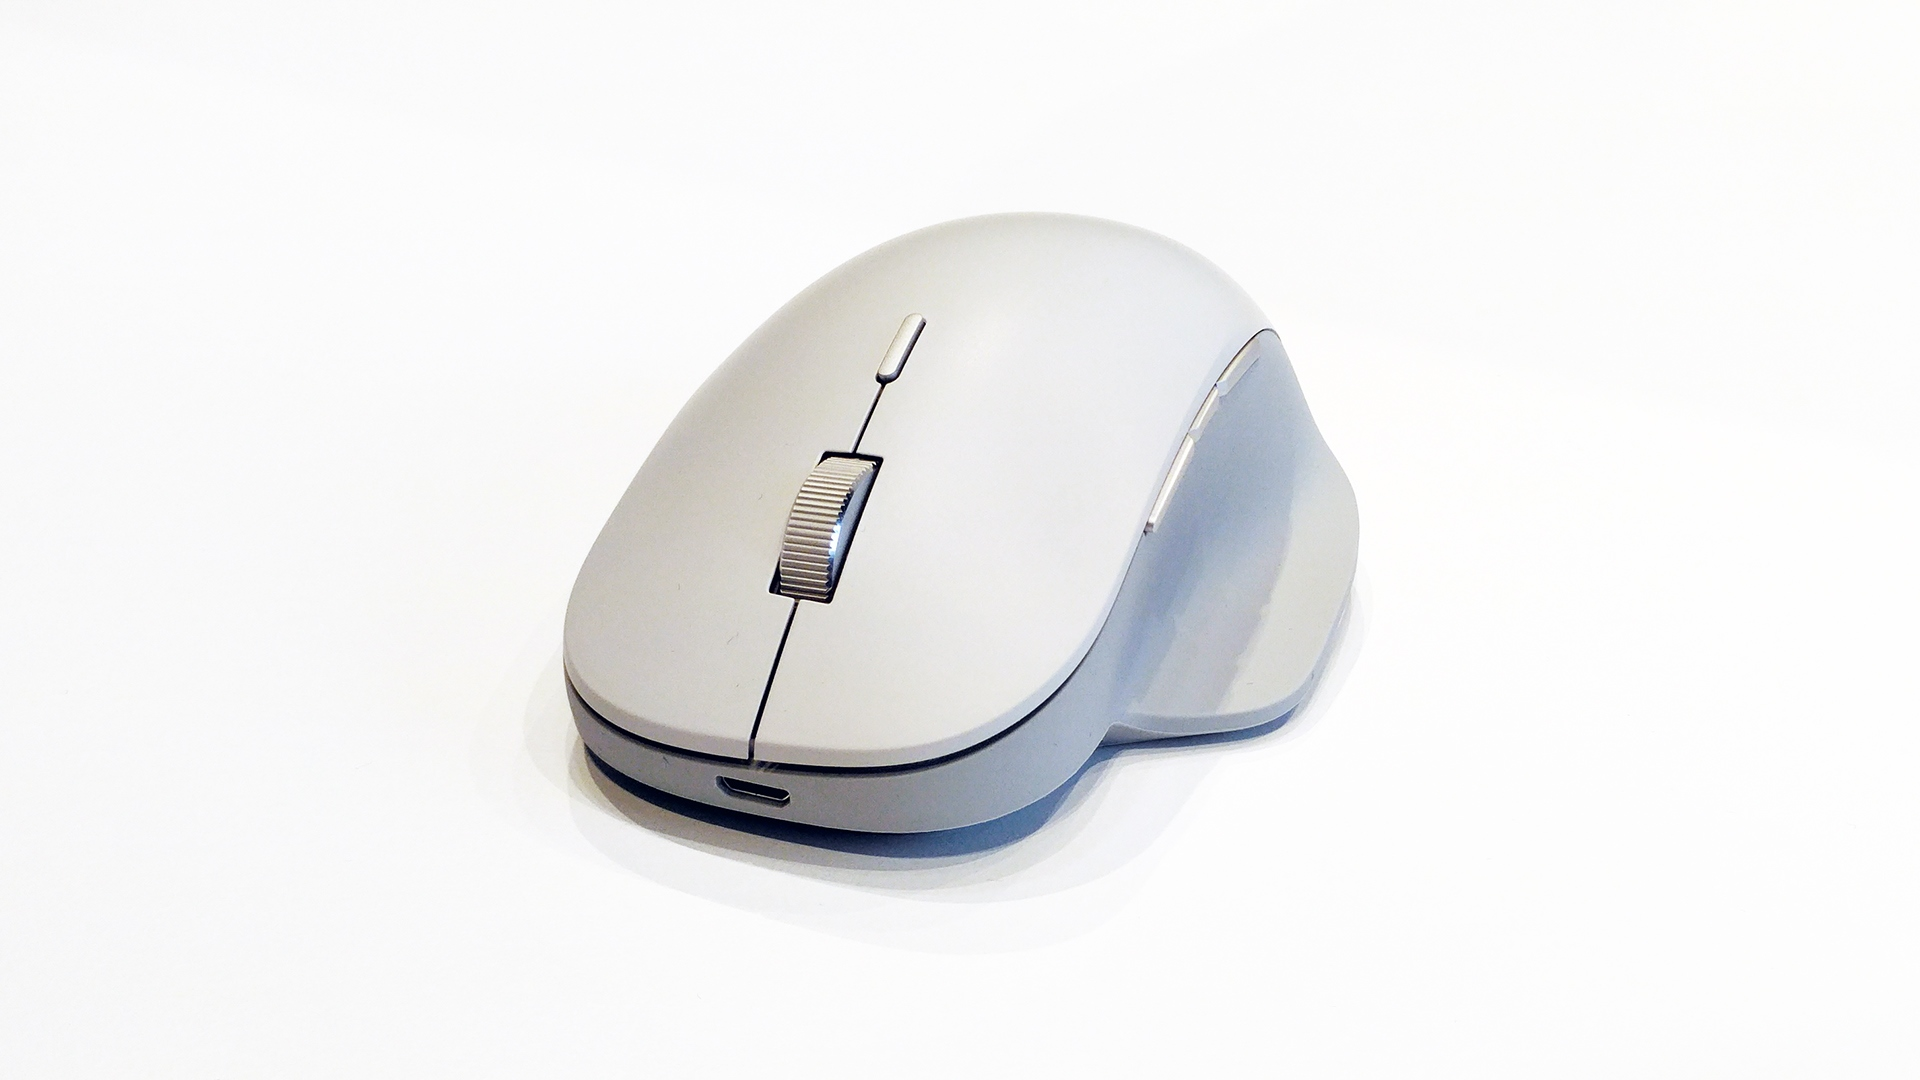 big_ms-mouse-3.jpg